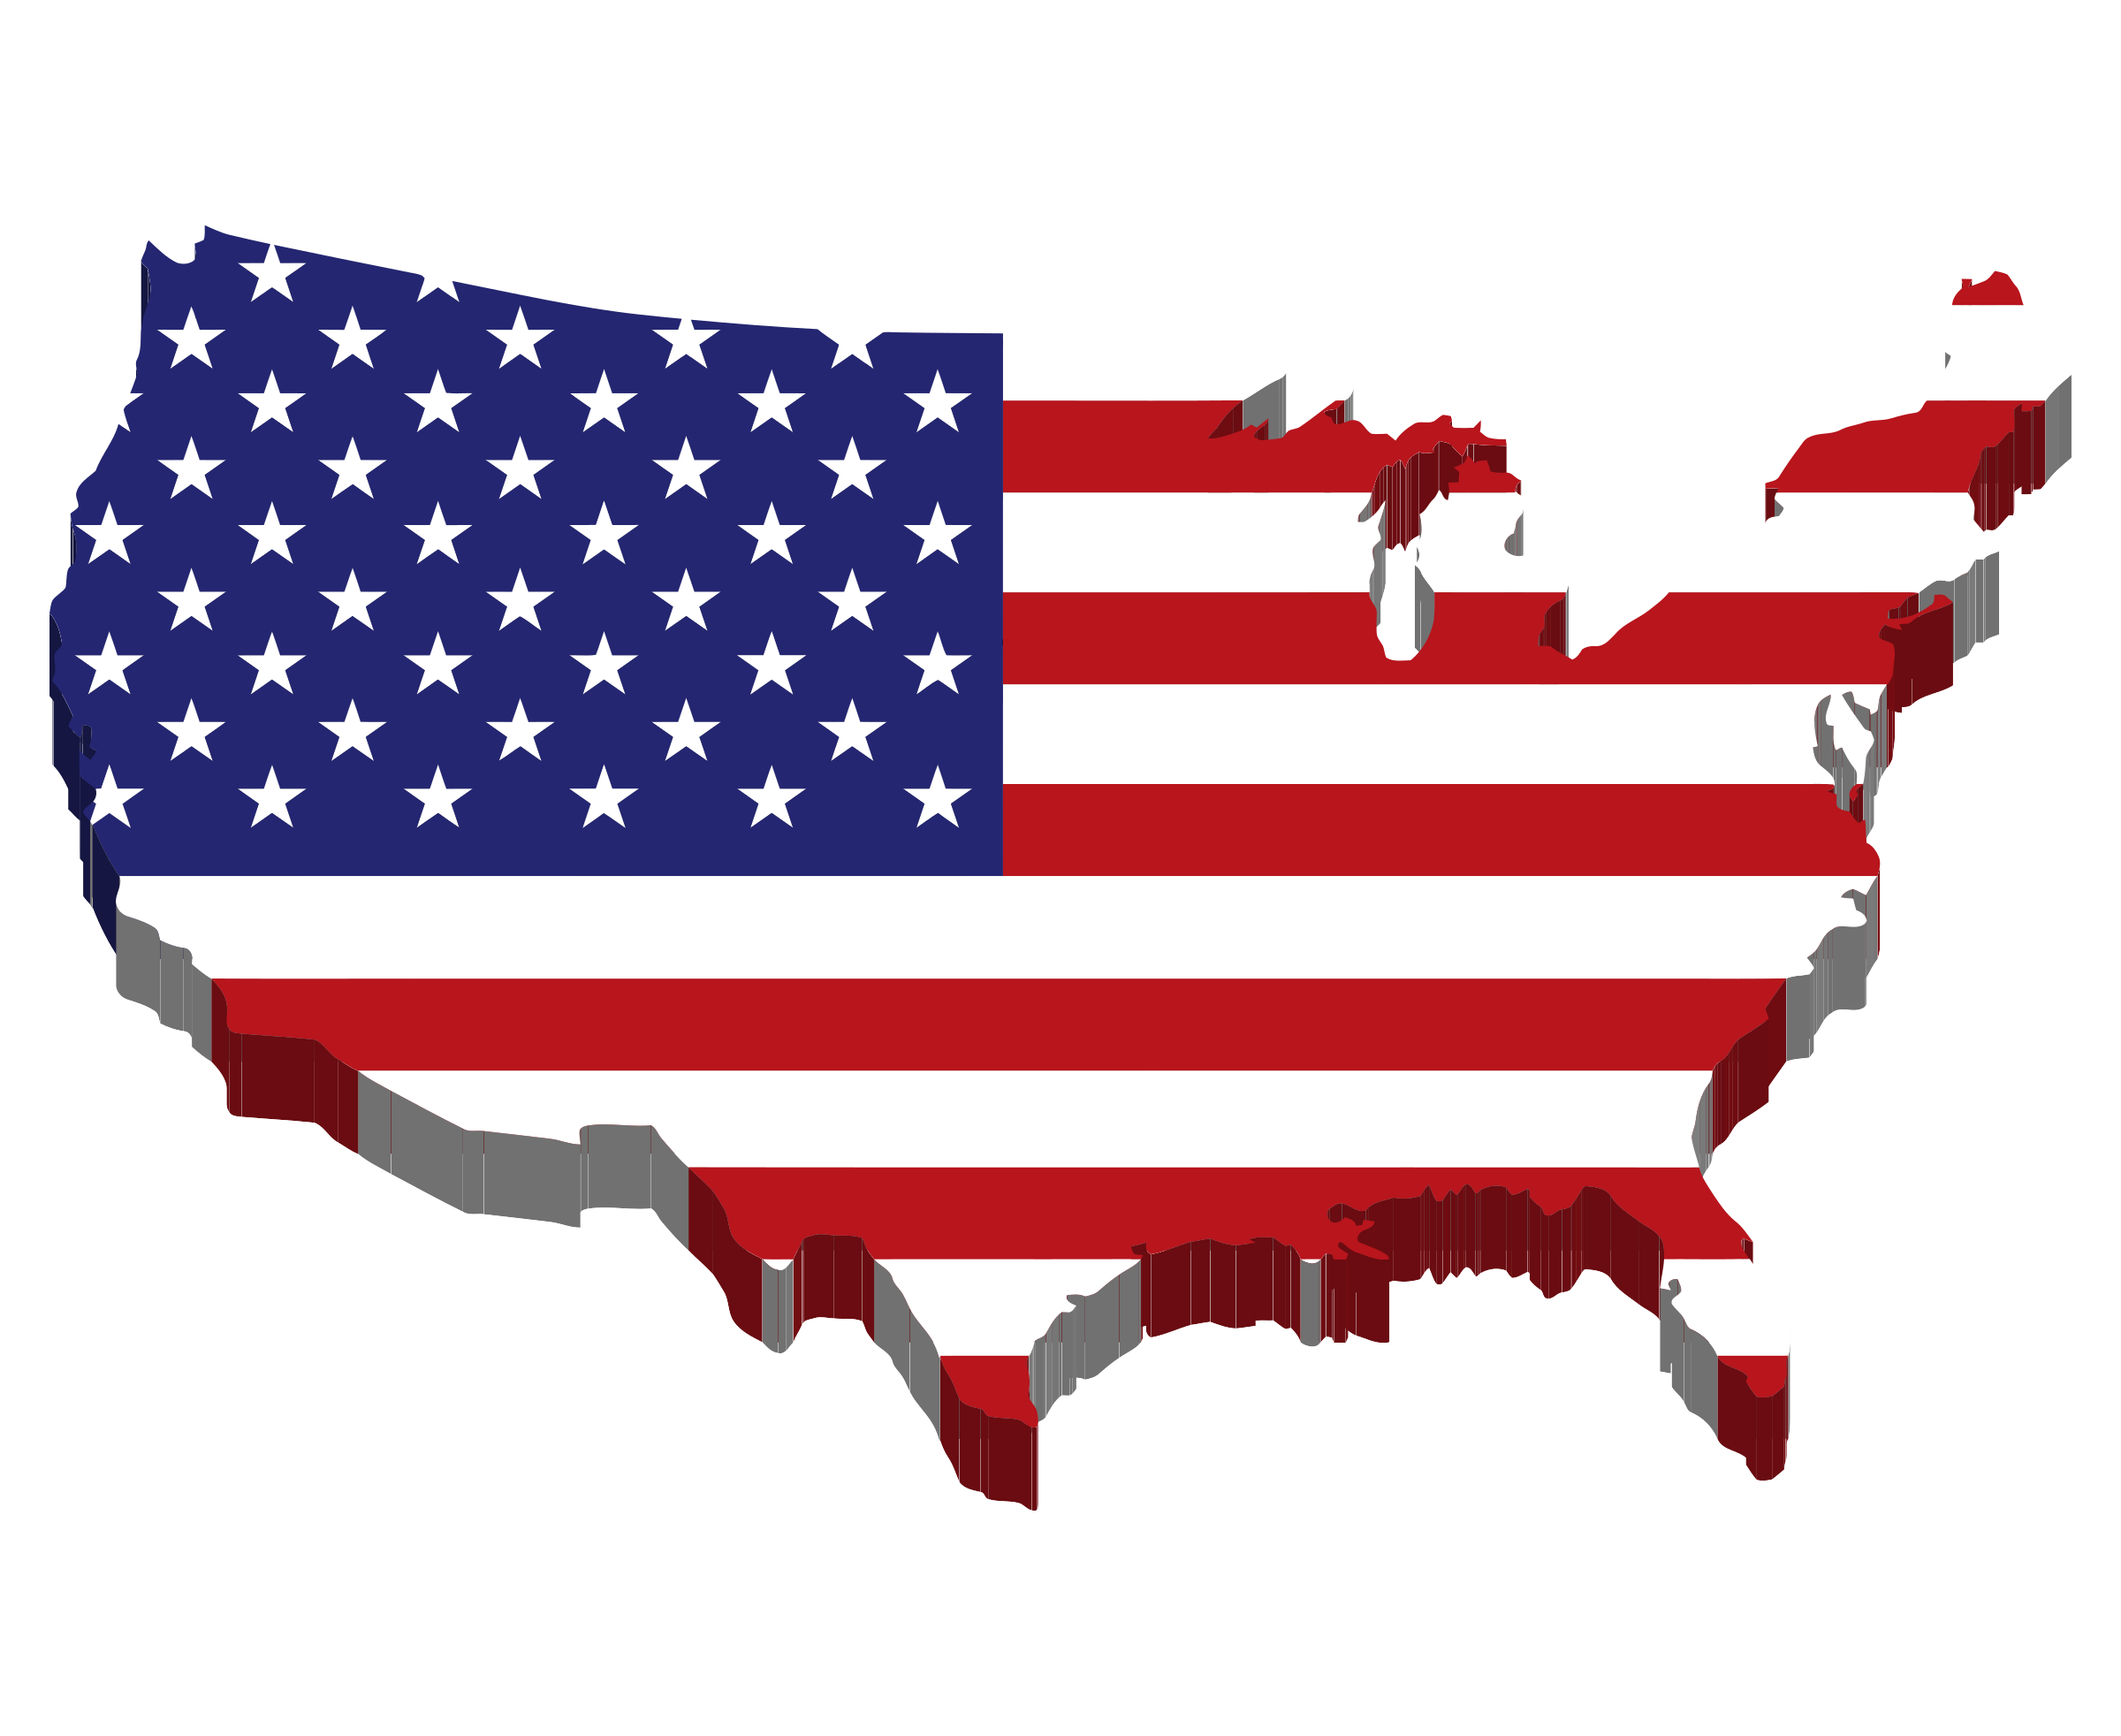 USA clipart state hd #4 - United States PNG HD